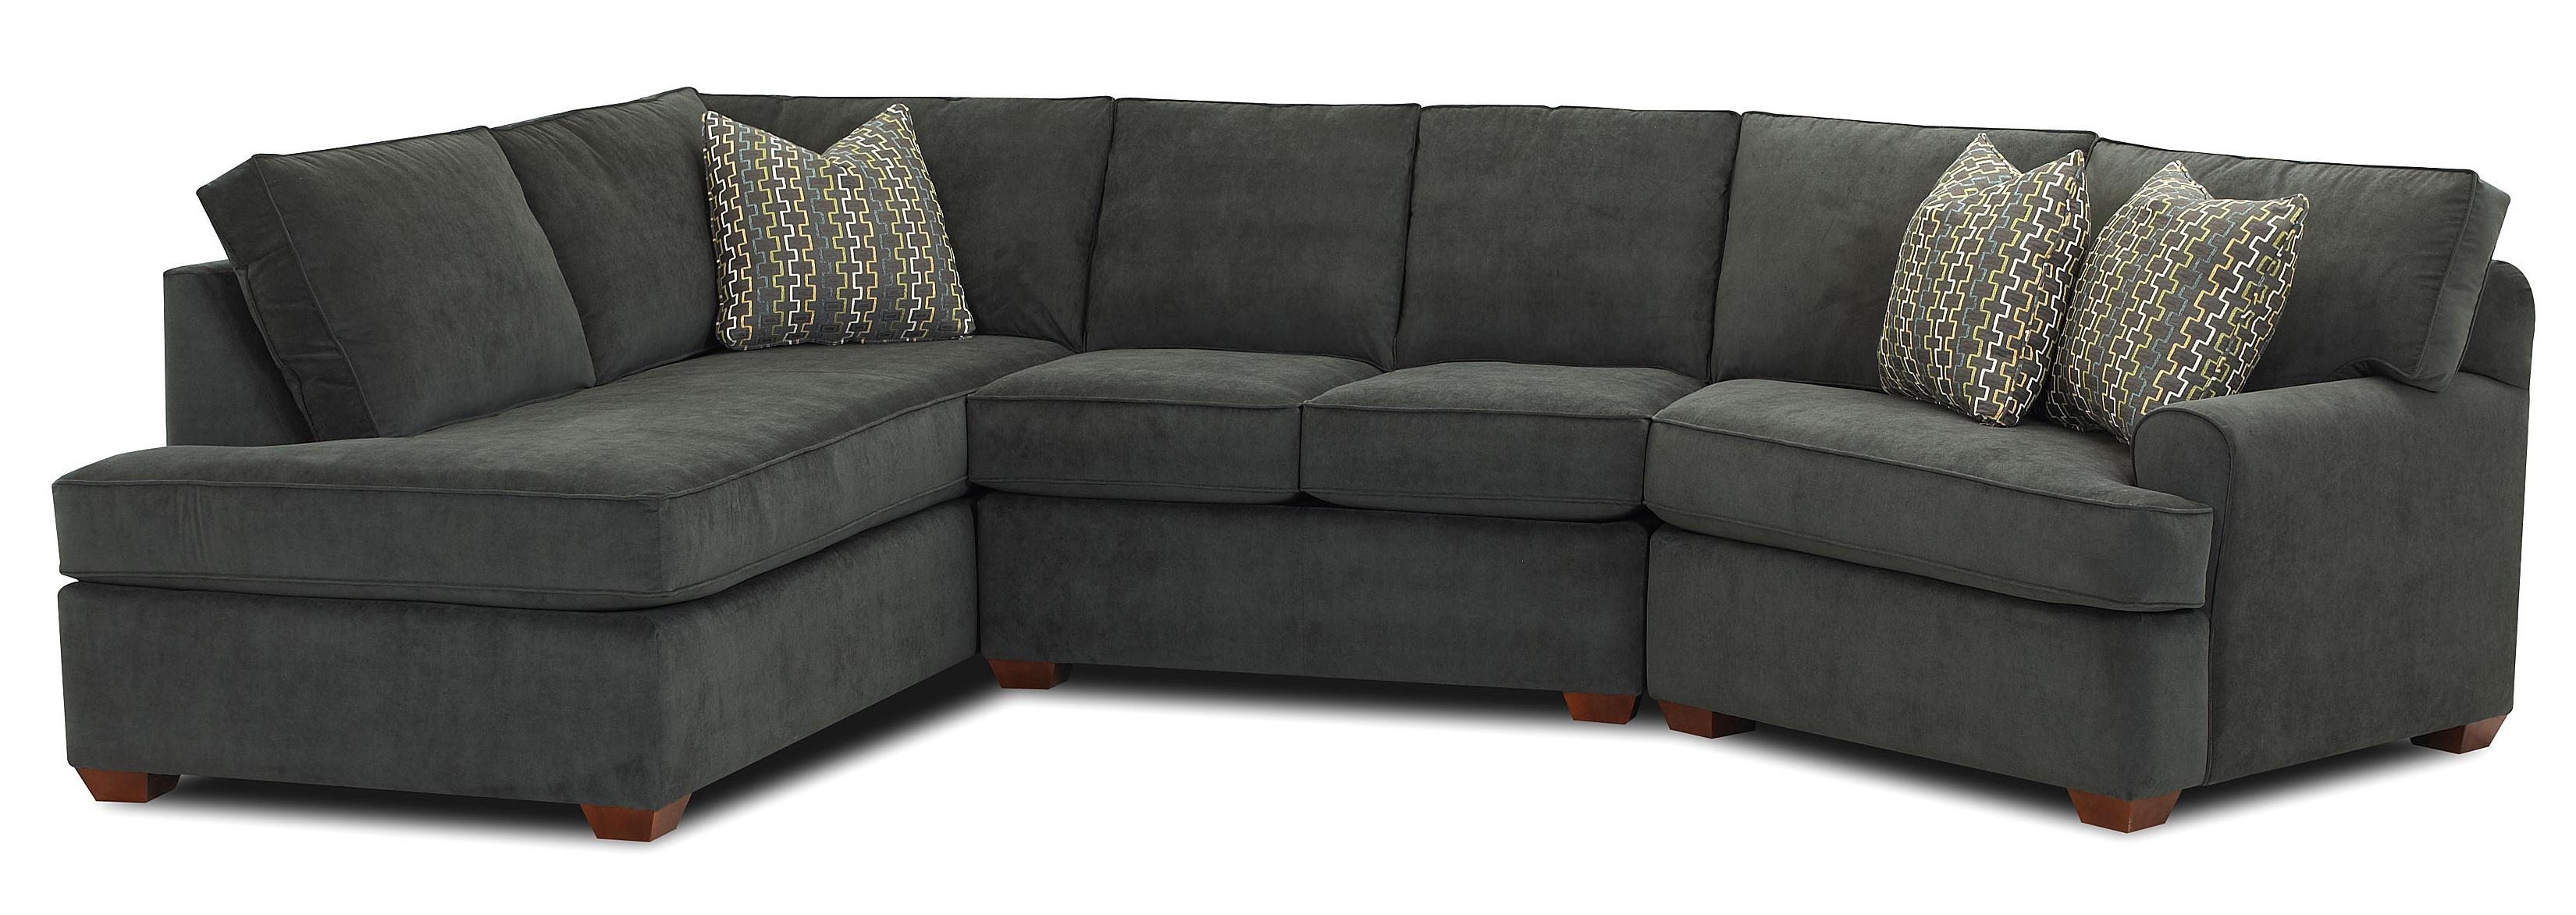 Hybrid Sectional Sofa by Klaussner at Northeast Factory Direct